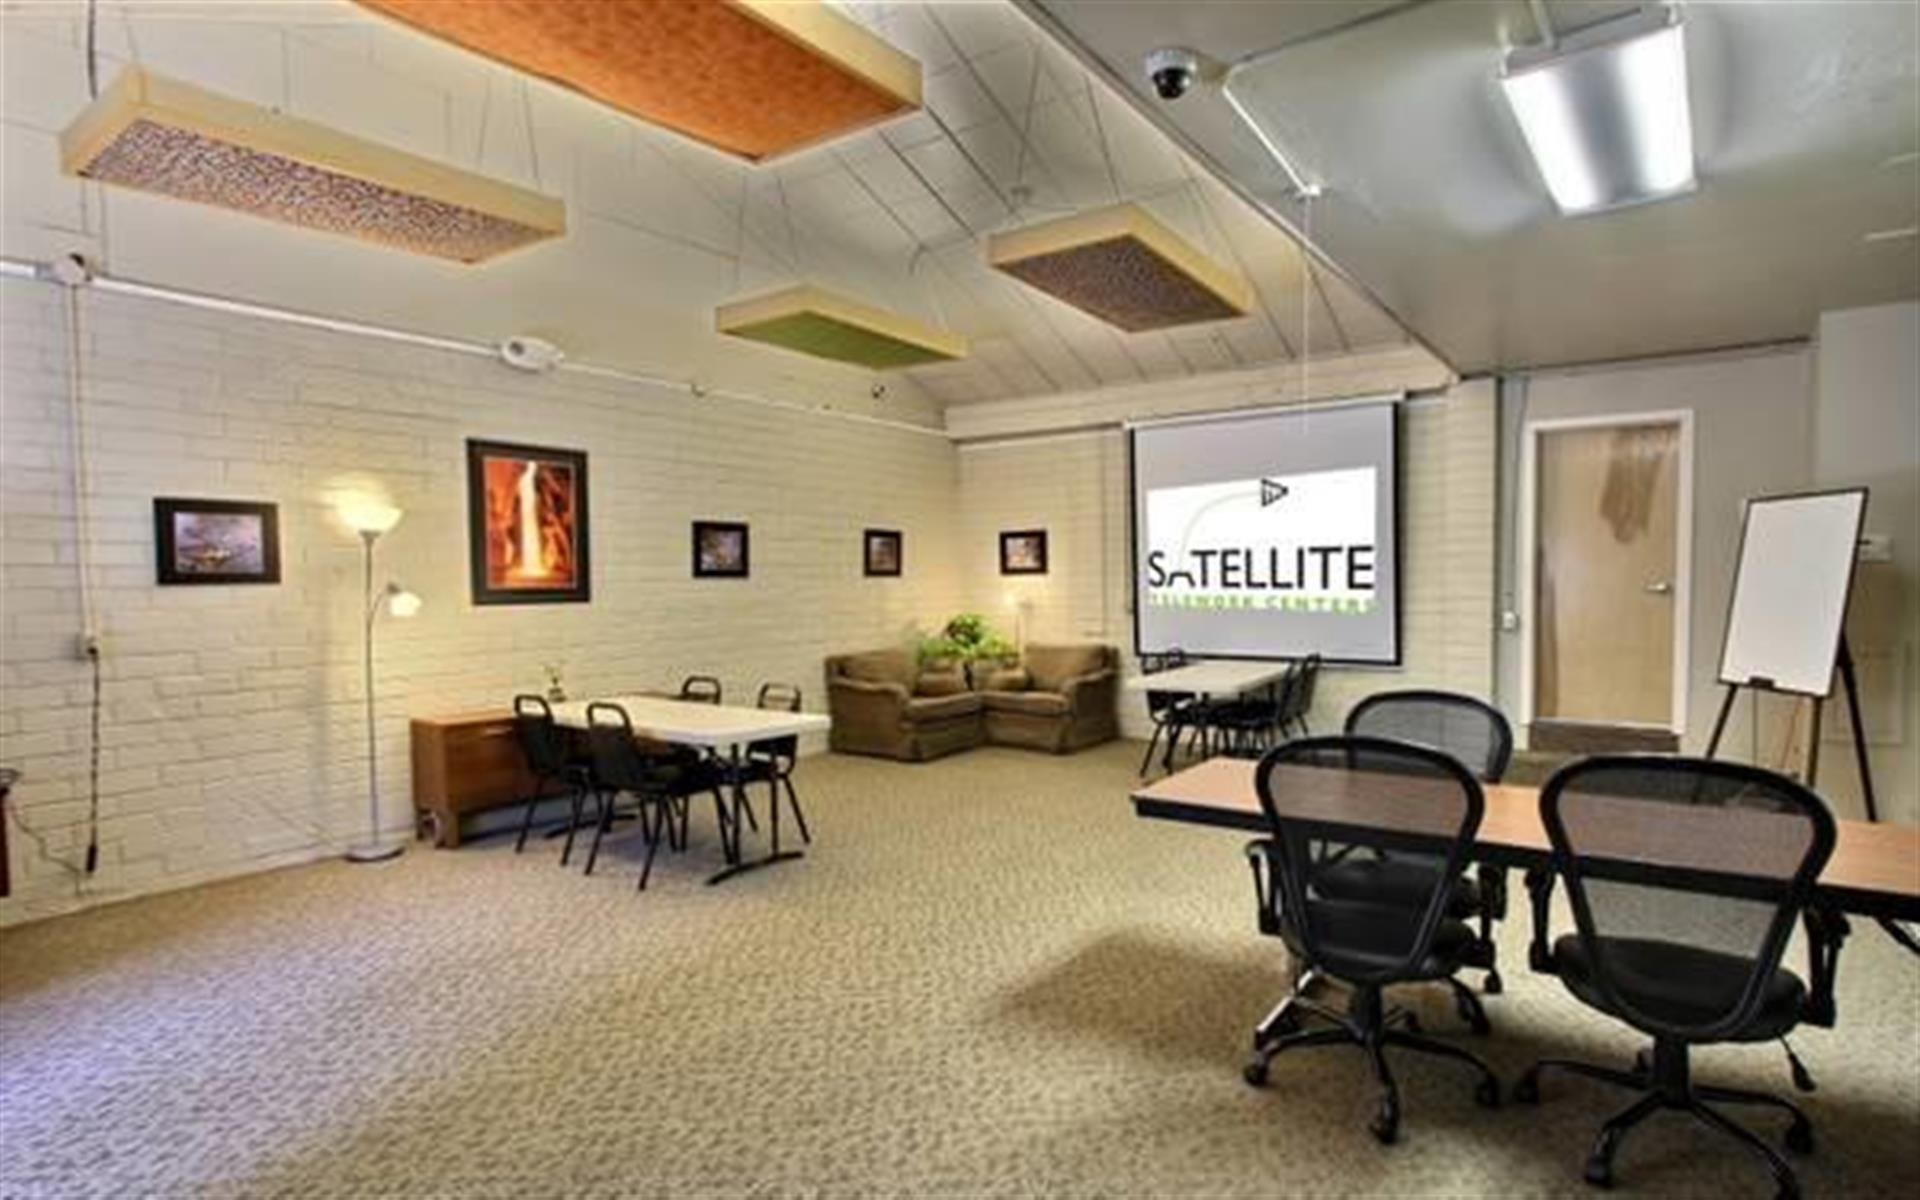 The Satellite Felton - Classroom/Event Room